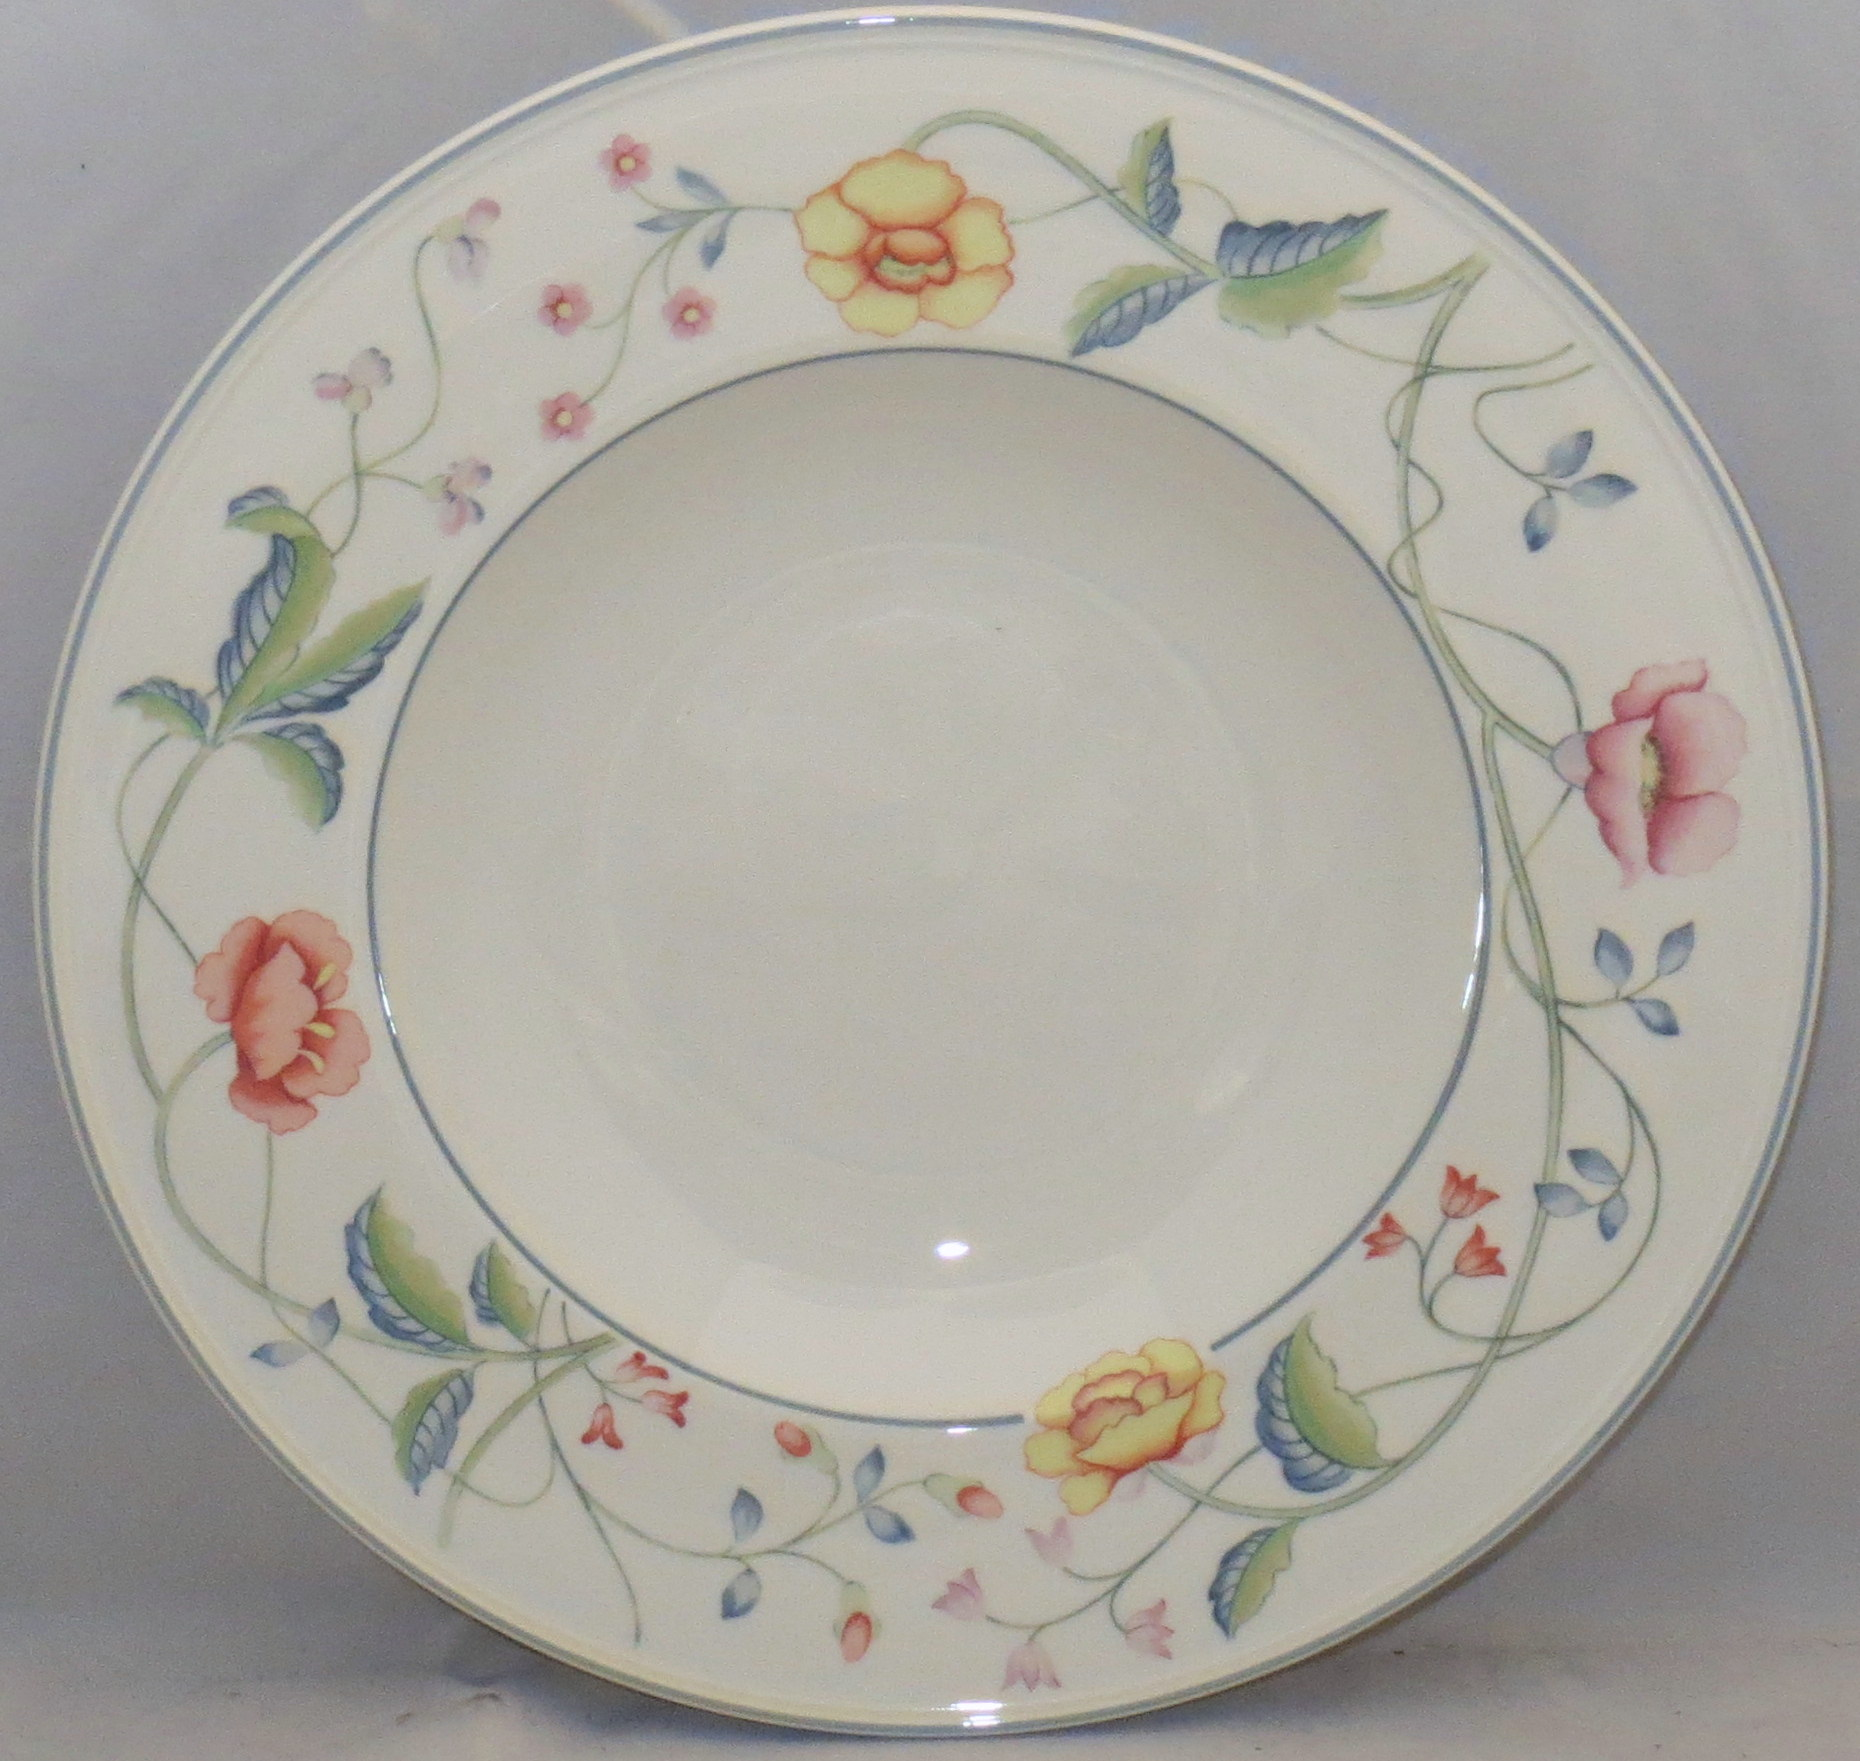 Villeroy & Boch Albertina Large Rim Soup Bowl